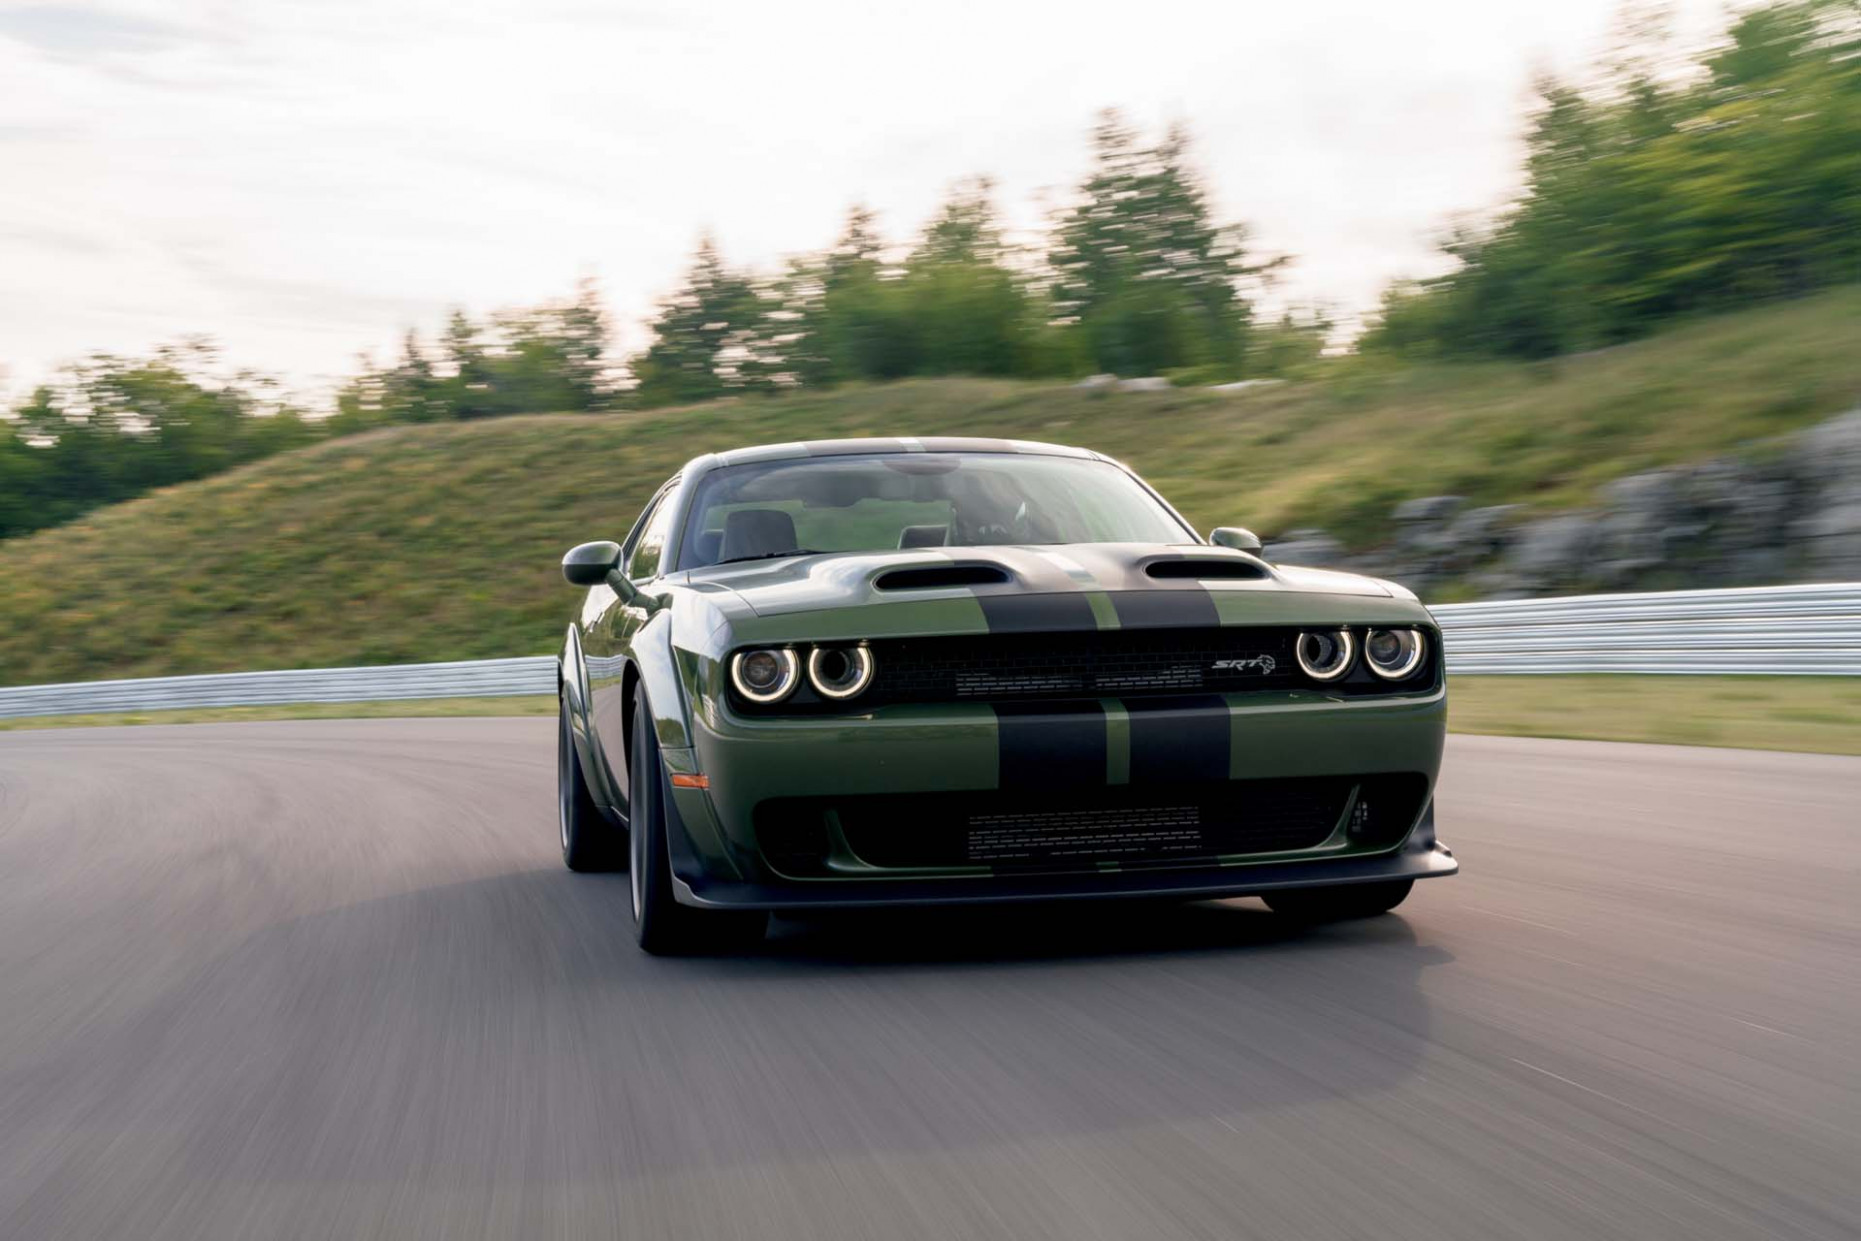 11 Dodge Challenger preview - dodge for 2020